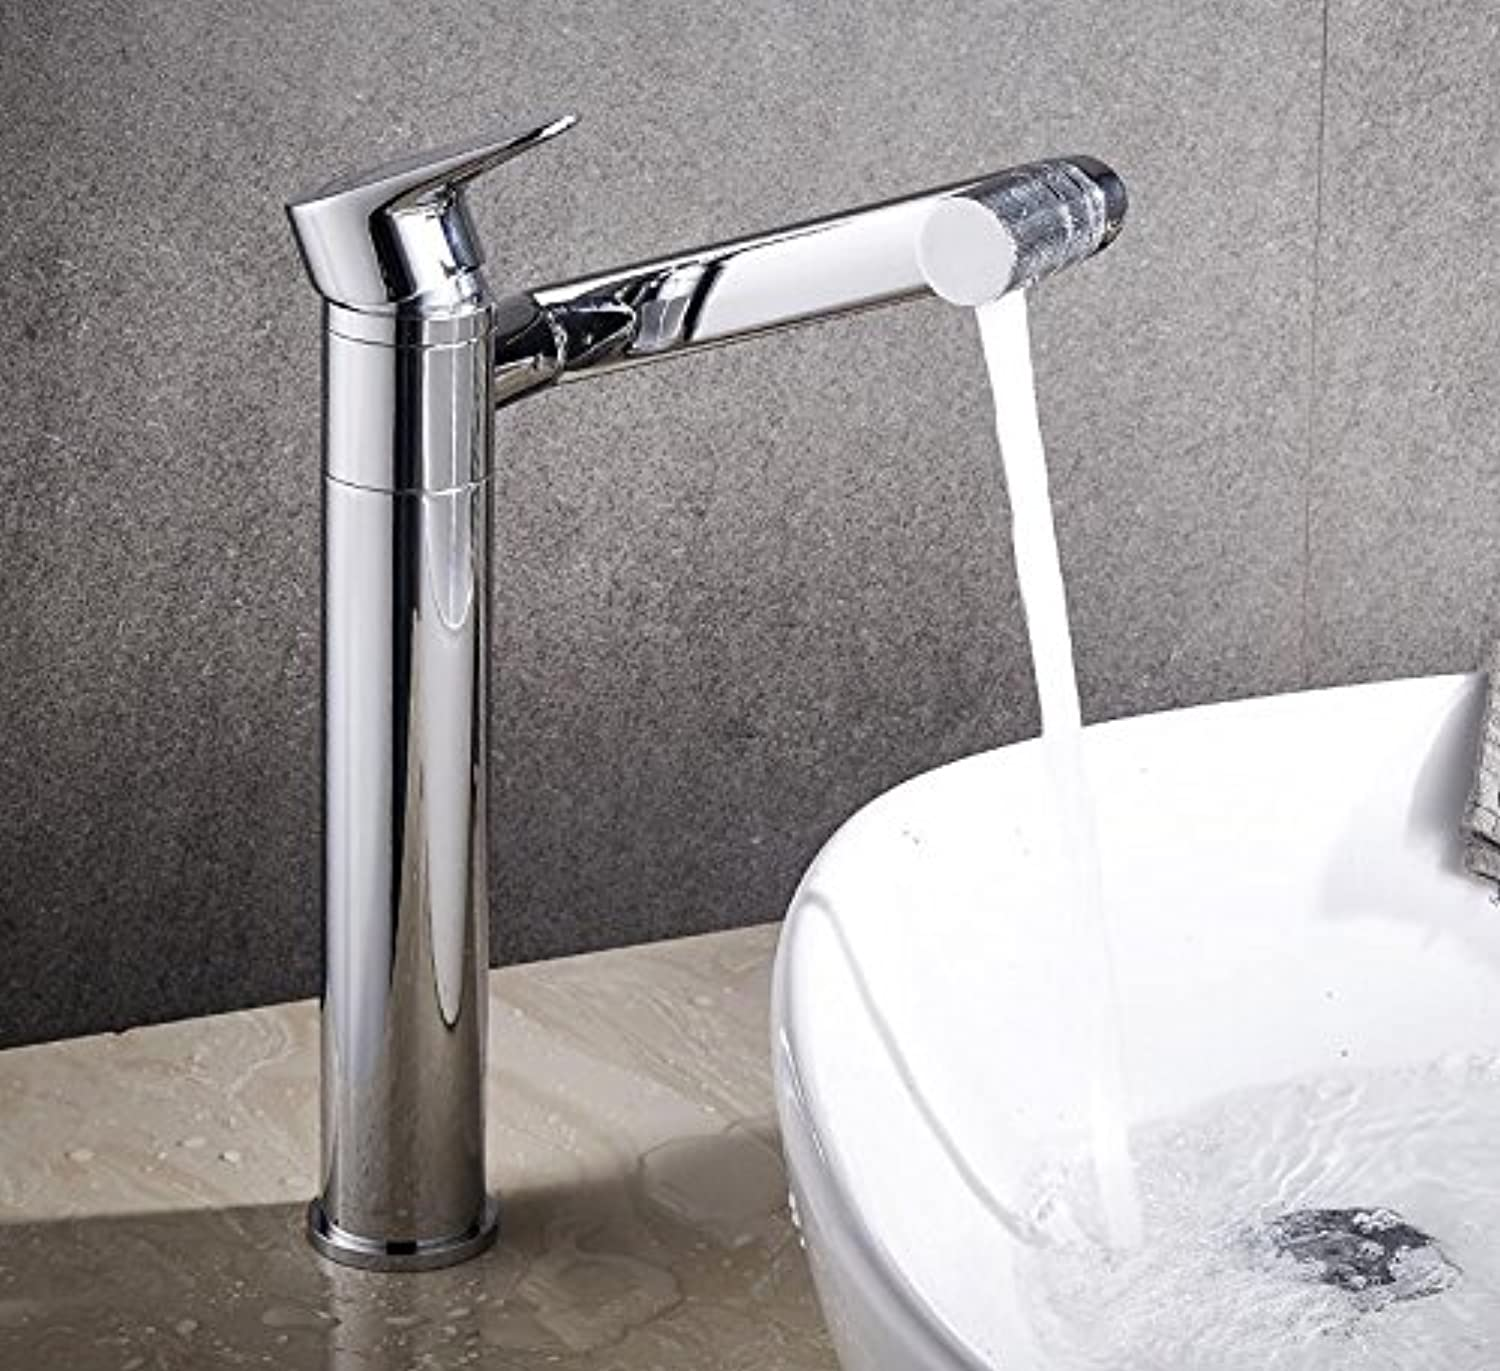 Makej Tall Basin Mixer Water Bathroom Tap Sink Faucet Bathroom Fixtures in Brass Chrome Polished Waterfall Vessel Basin Faucet